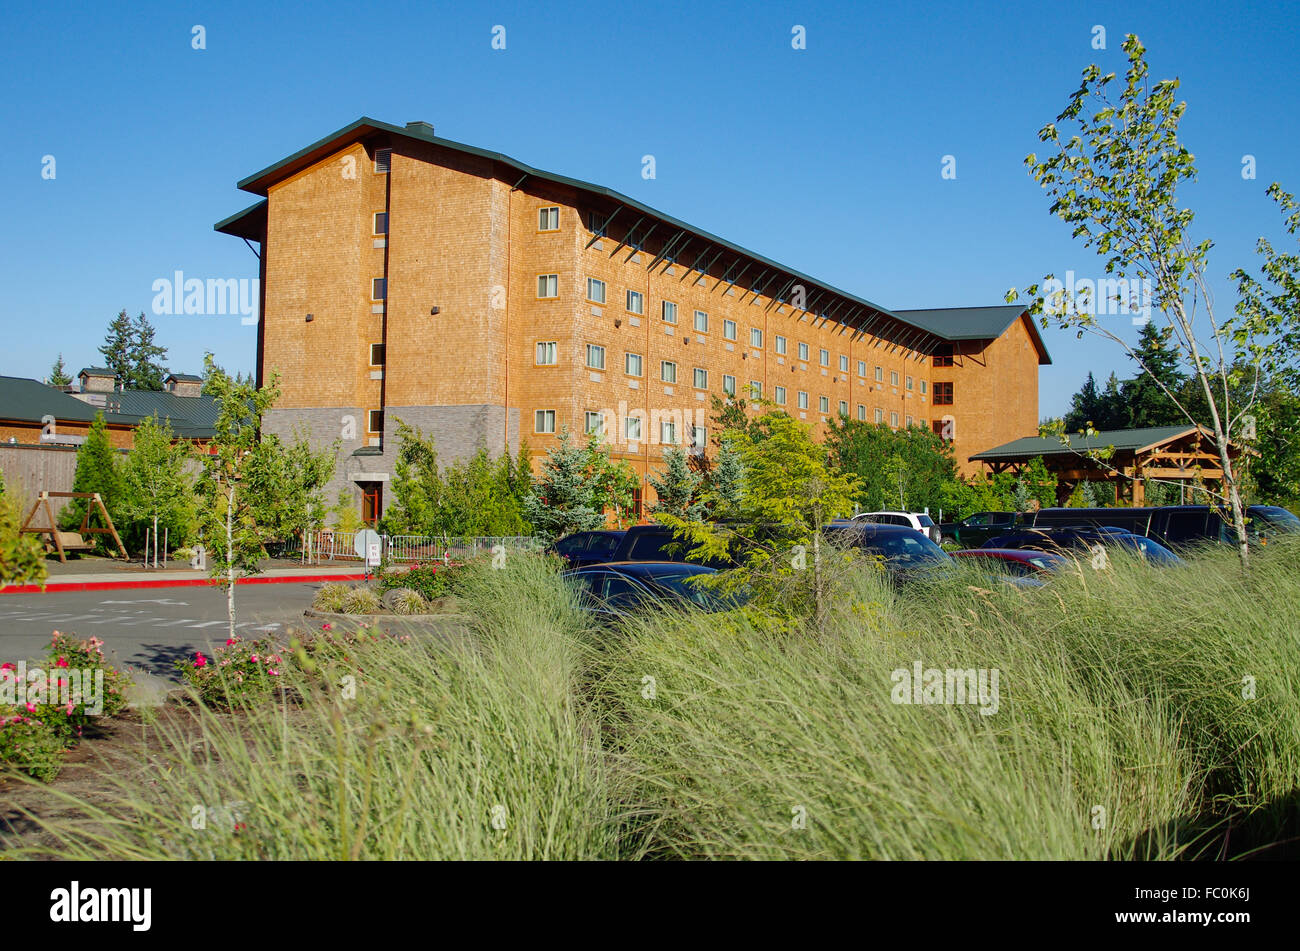 Little Creek Casino and hotel is owned and operated by the Squaxin Island Tribe. Shelton, Washington, USA - Stock Image